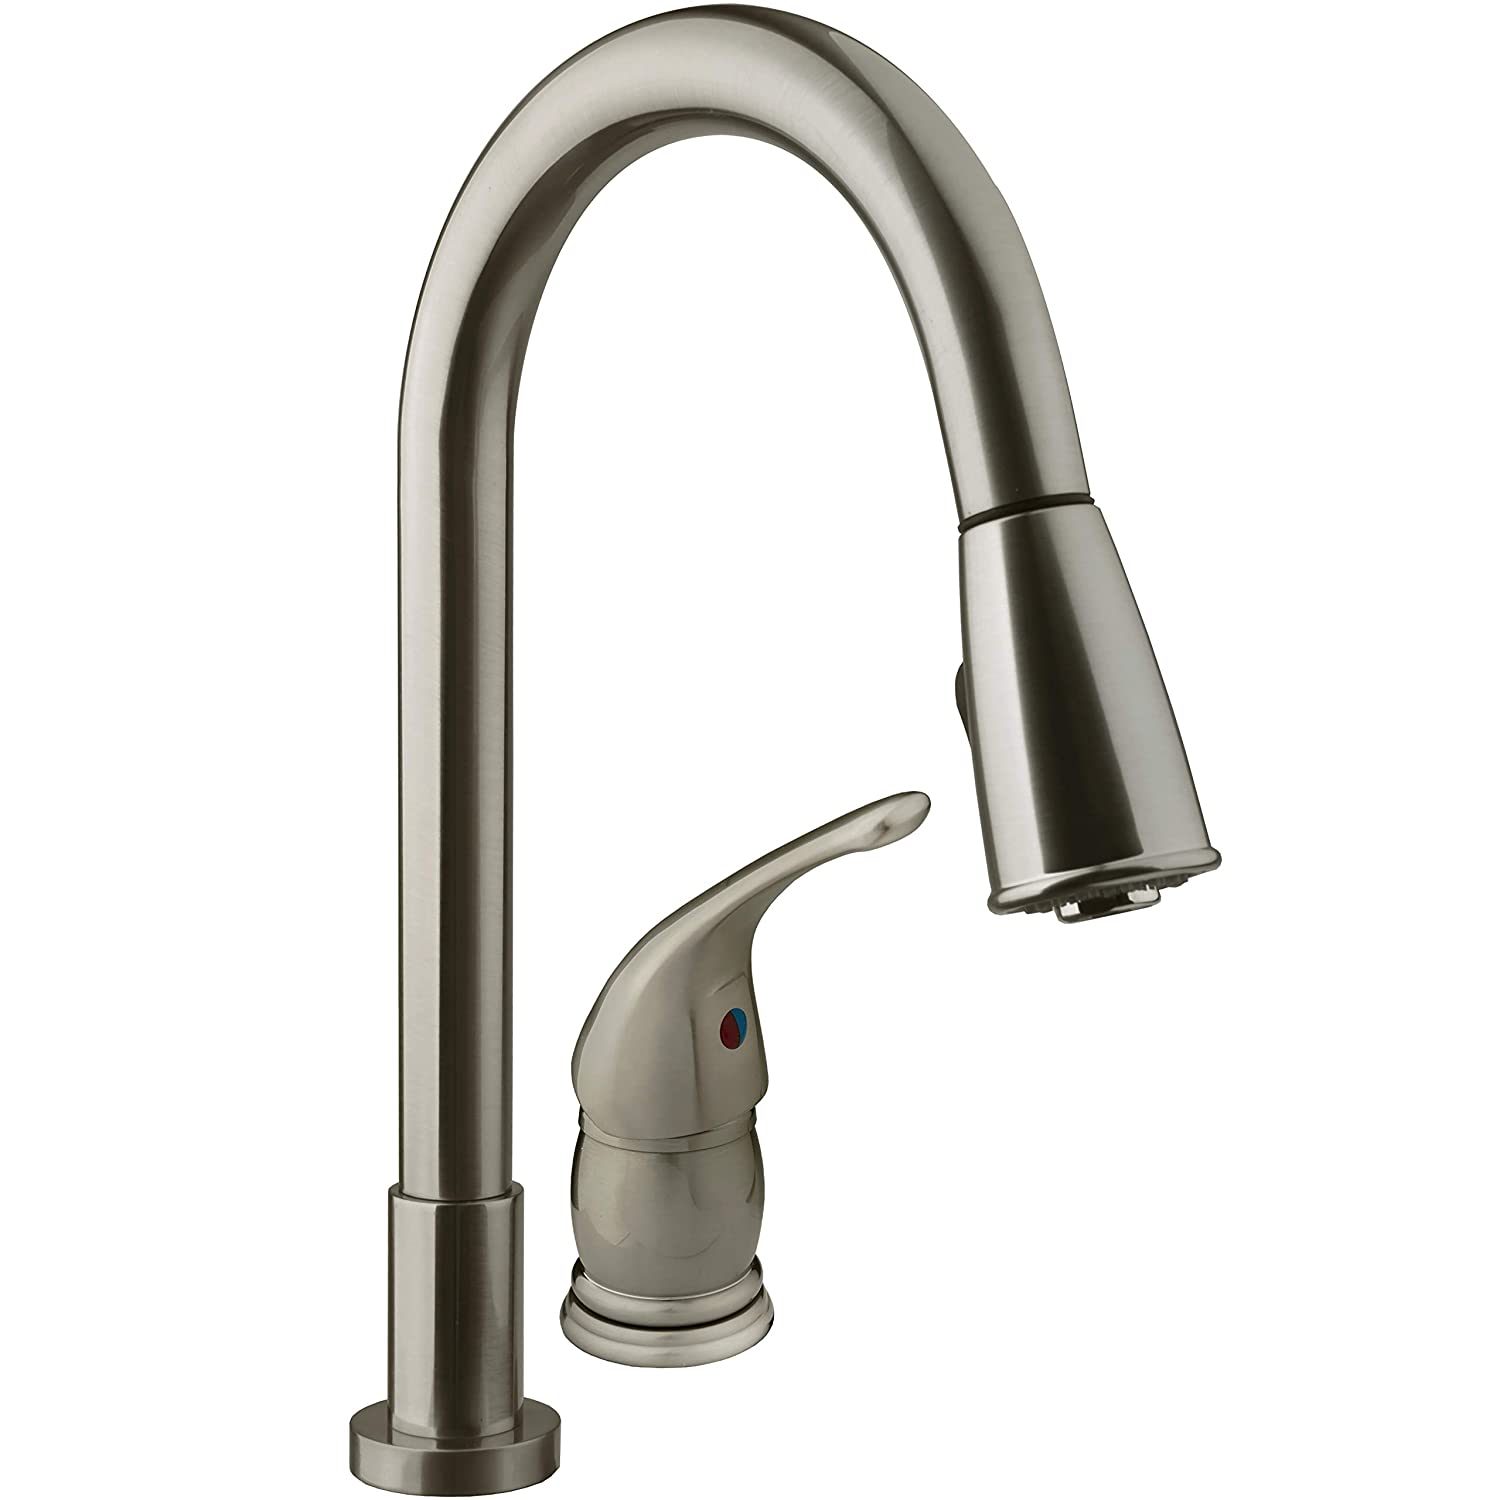 Dura Faucet Kitchen Faucet for RV Pull-Down with Side Lever for Recreational Vehicles, Motorhomes, 5th Wheels, and Travel Trailers (Brushed Satin Nickel)